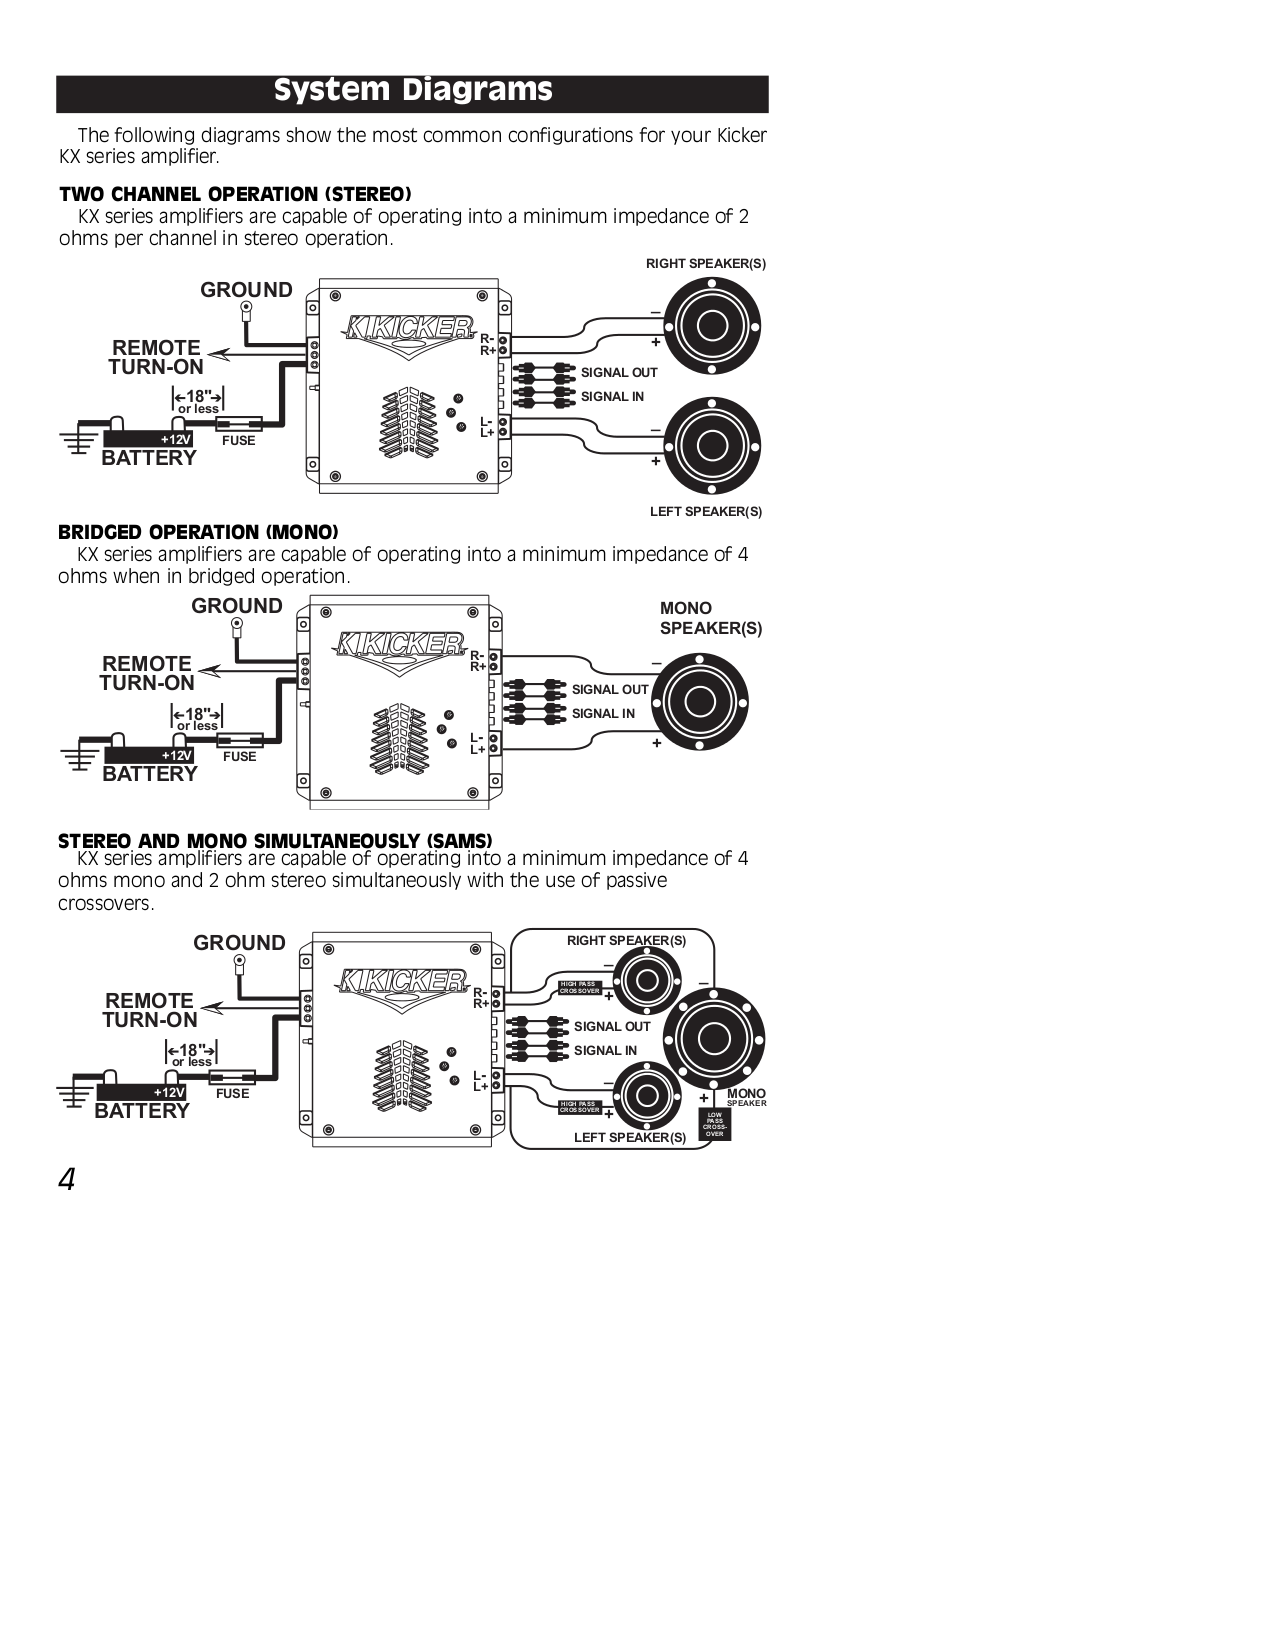 Kicker Kx800 1 Wiring Diagram All Kind Of Diagrams Pt250 Pdf Manual For Car Amplifier Kx120 2